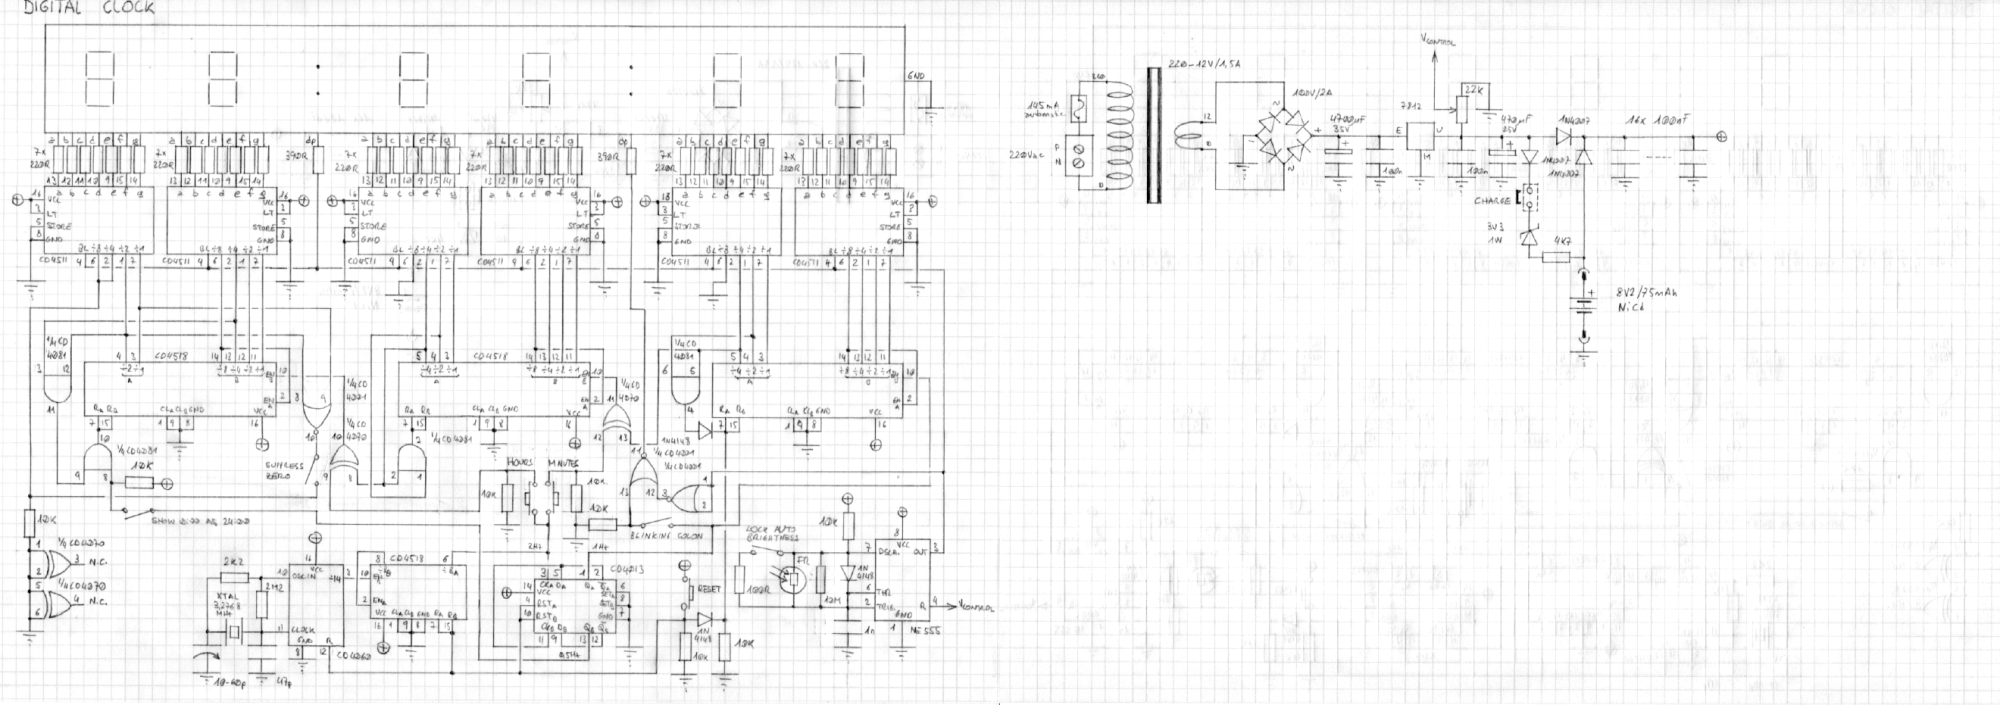 hight resolution of circuit diagram of the c mos clock click to enlarge